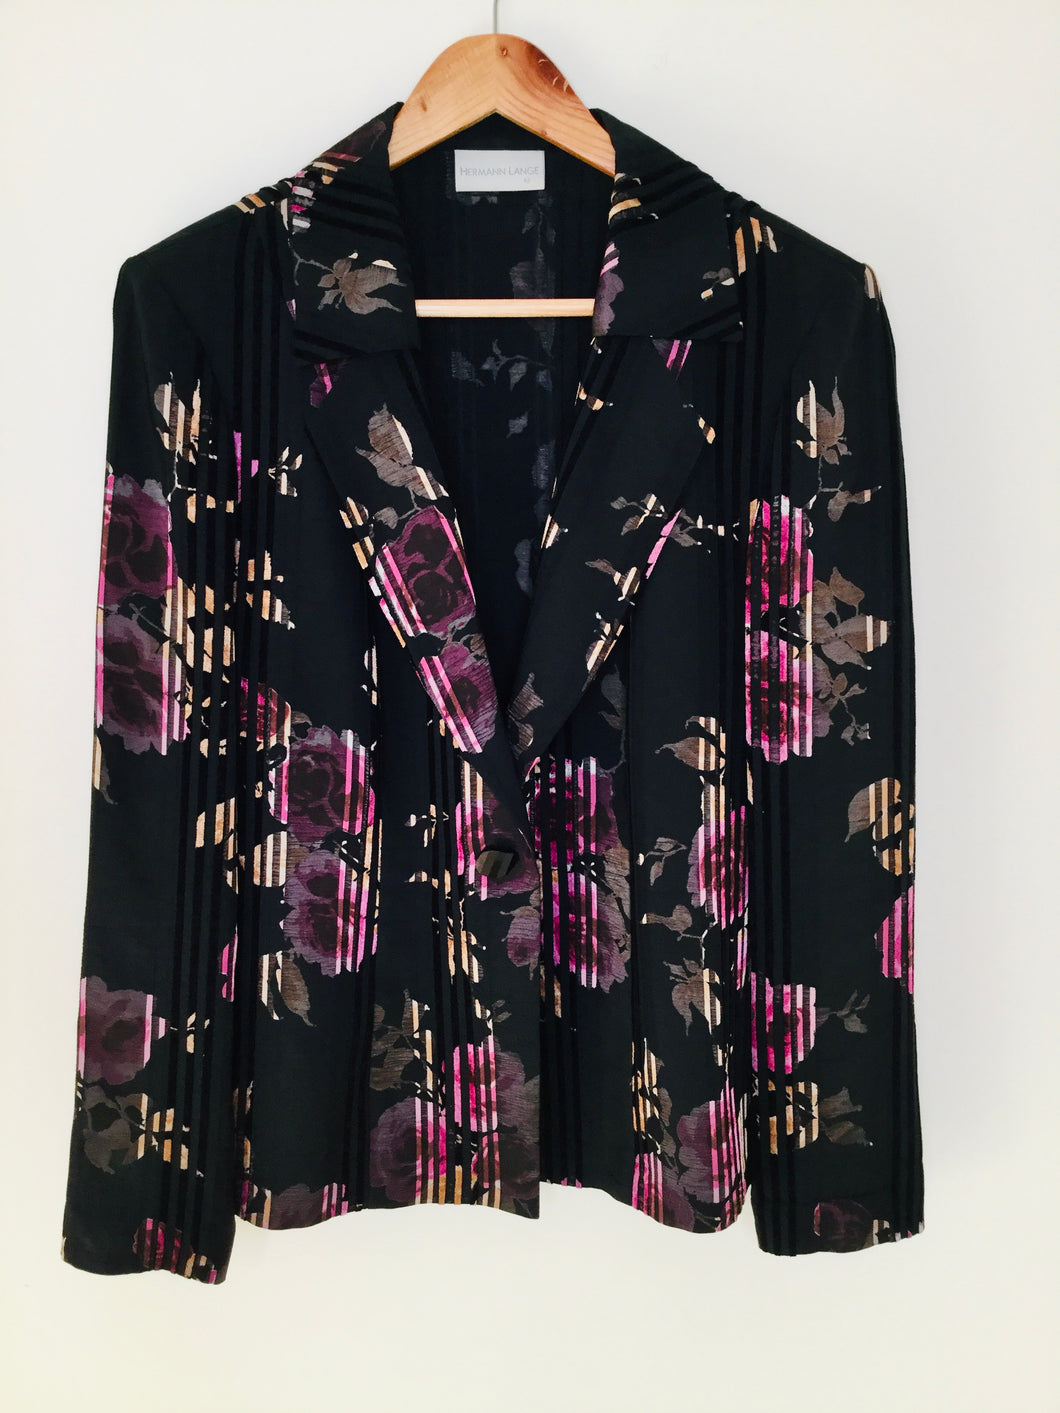 Black blazer with pink floral print